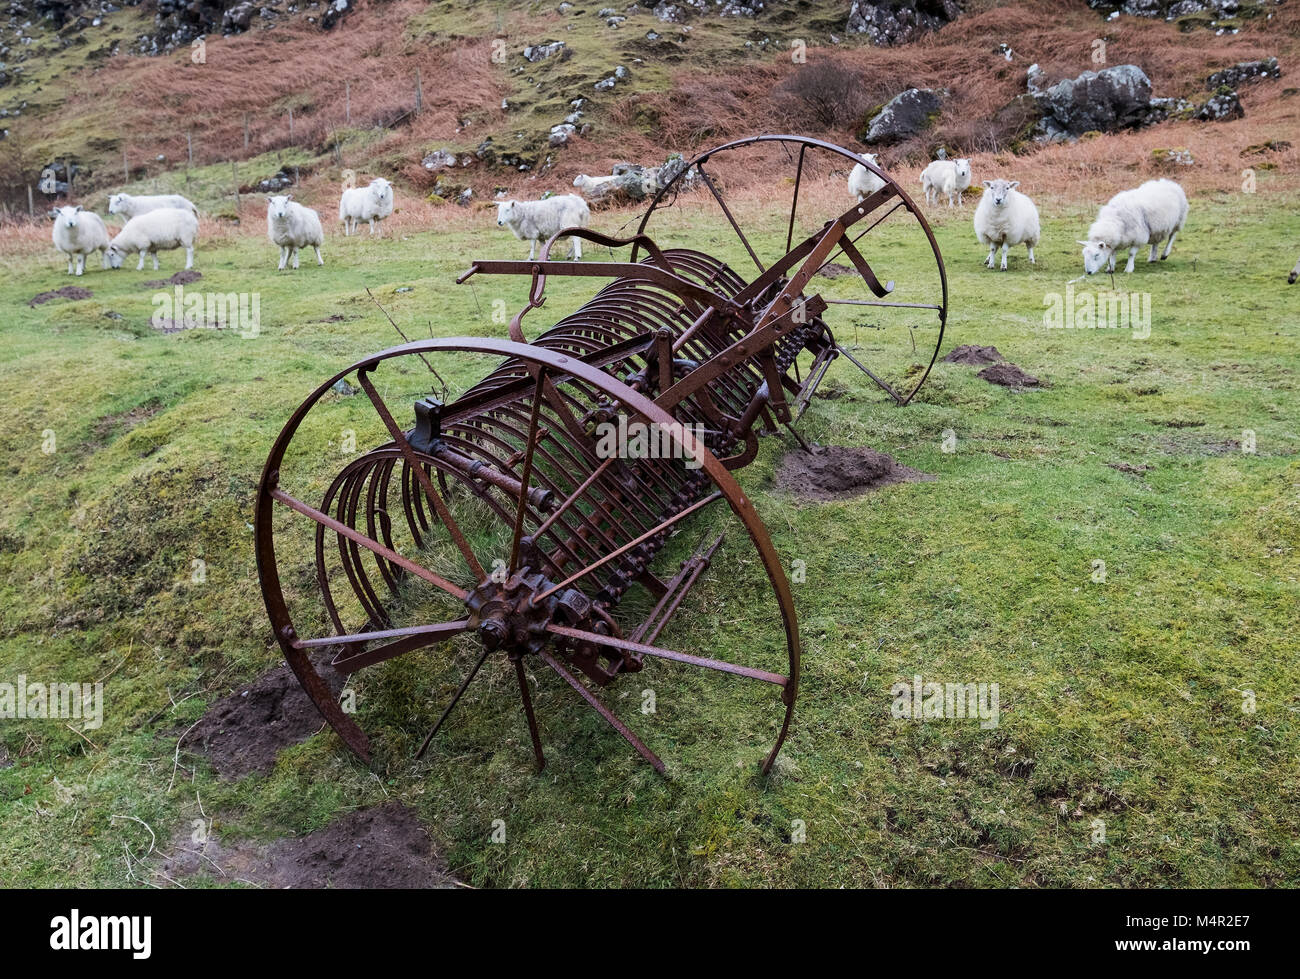 Abandoned agricultural haymaking machine on the Isle of Mull, Inner Hebrides, Scotland. - Stock Image